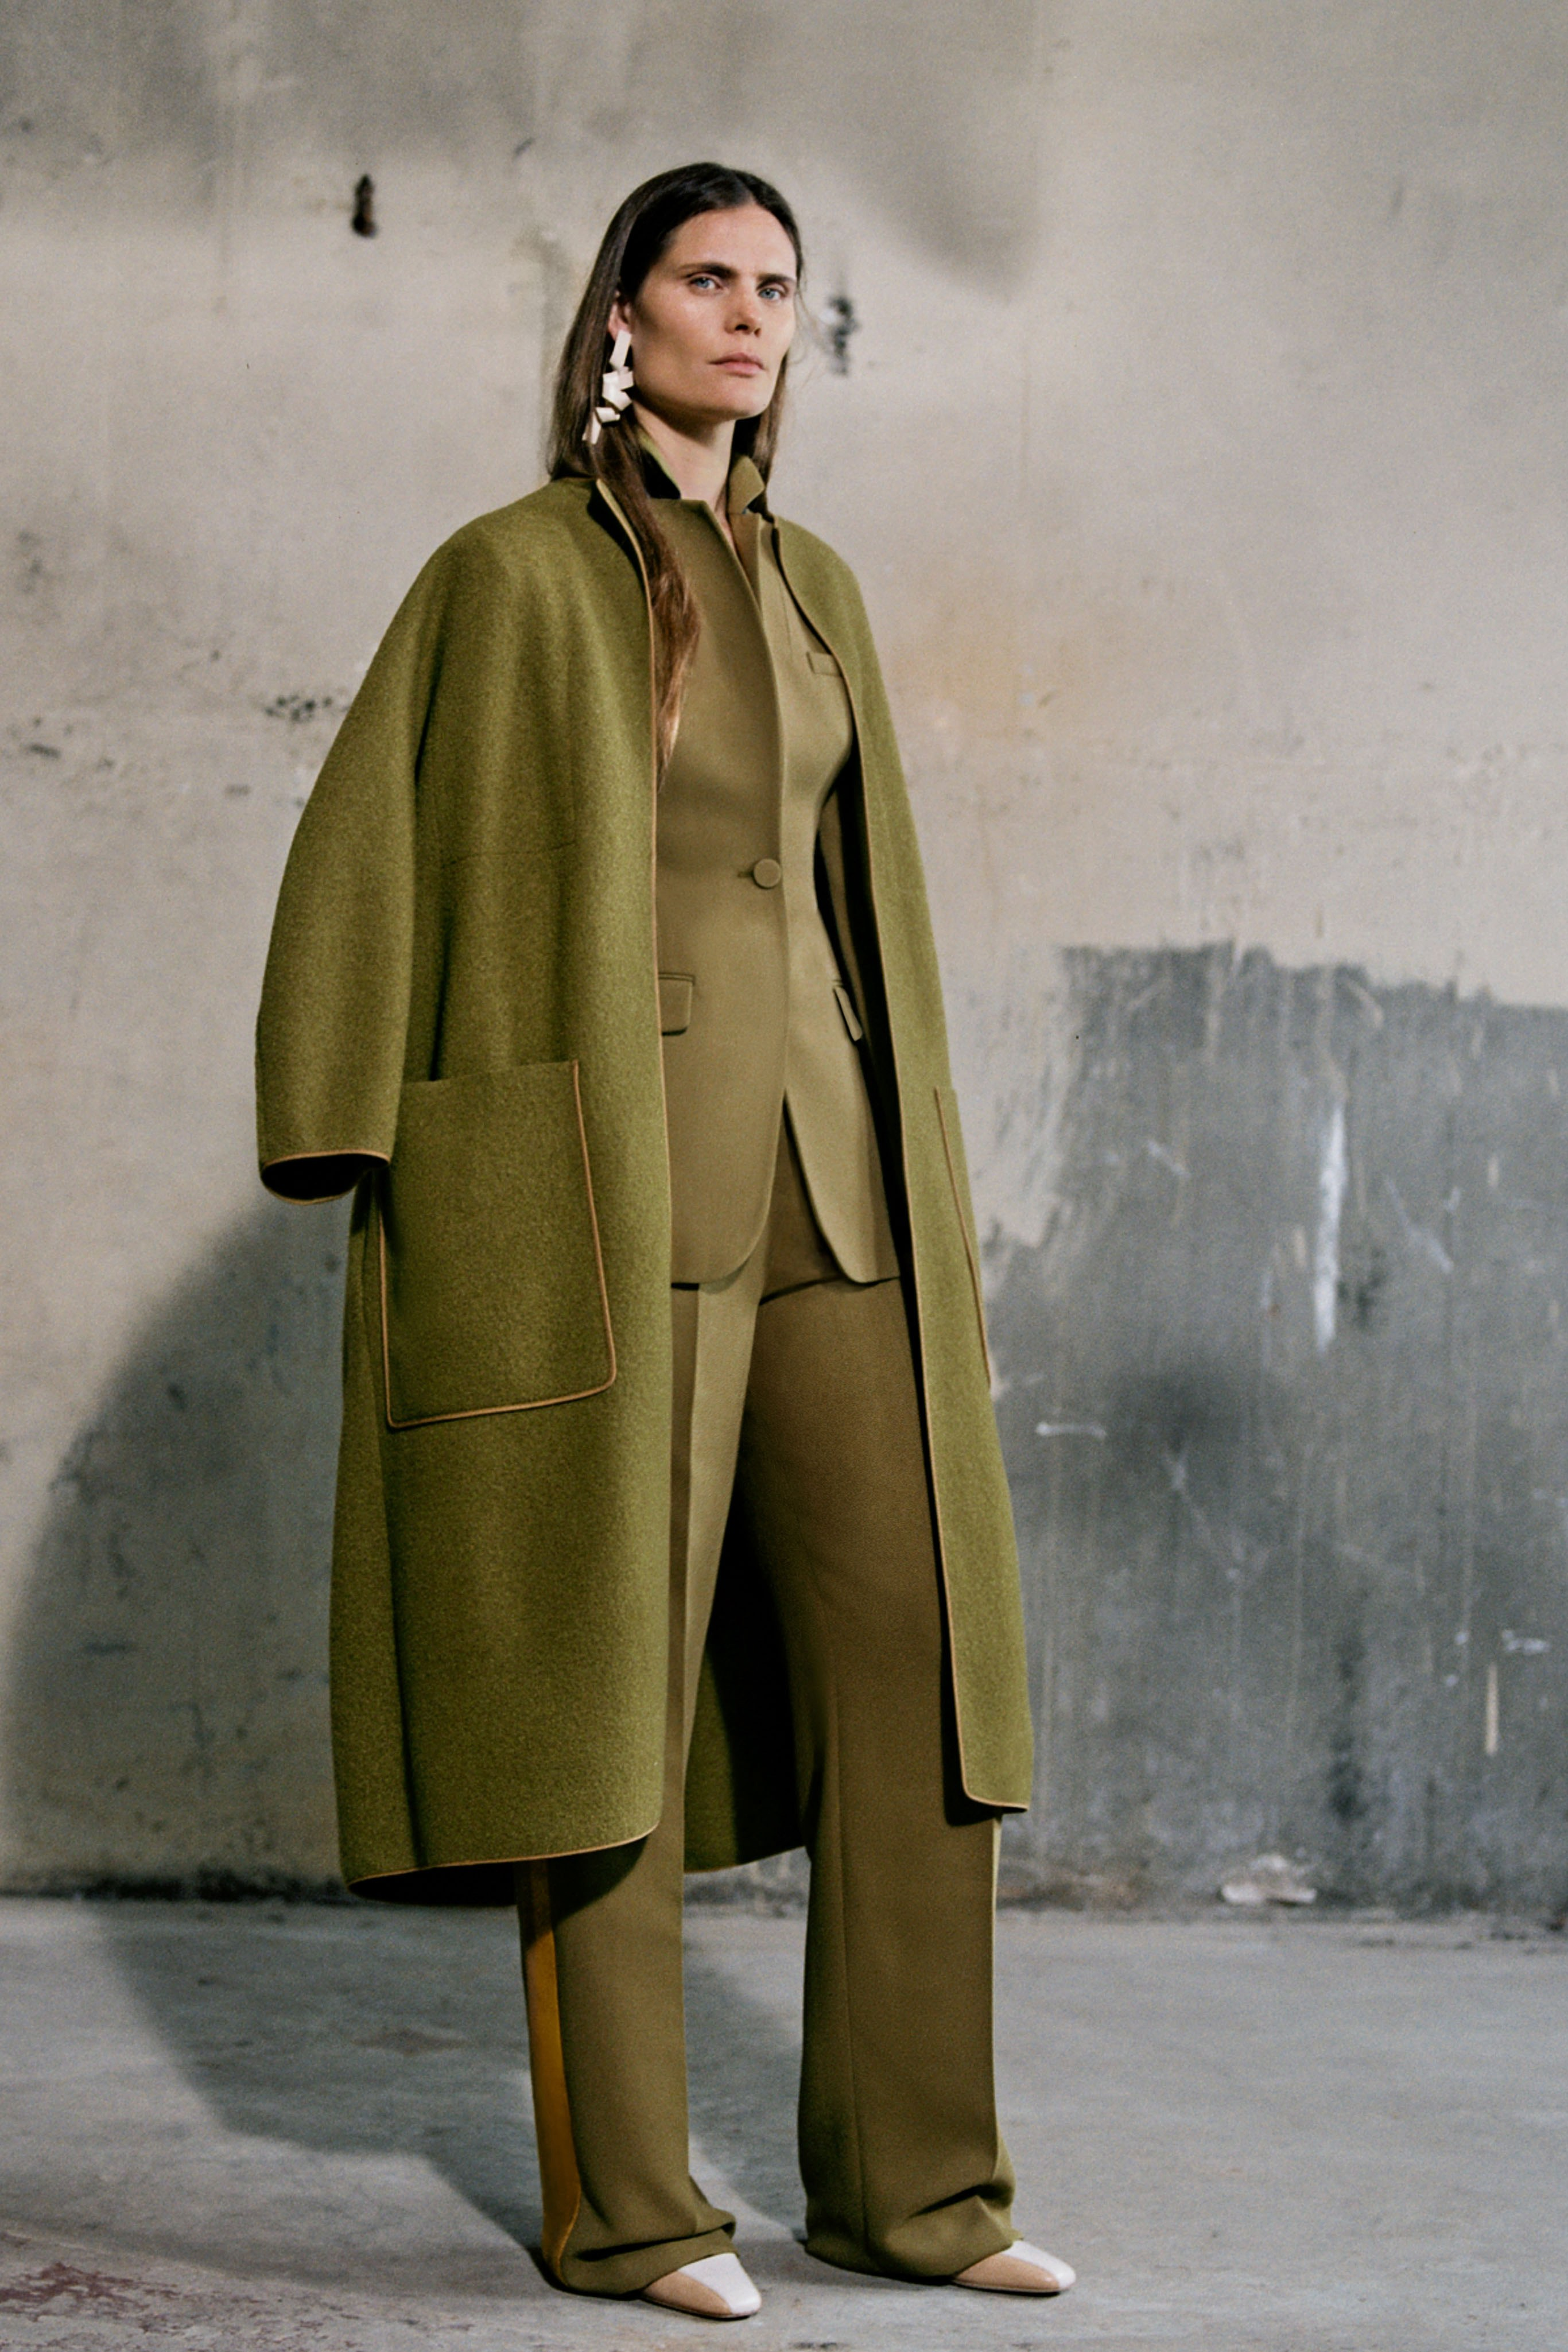 Usefull Colors Olive Green Outfit Roksanda Pre-Fall Layered Outfit